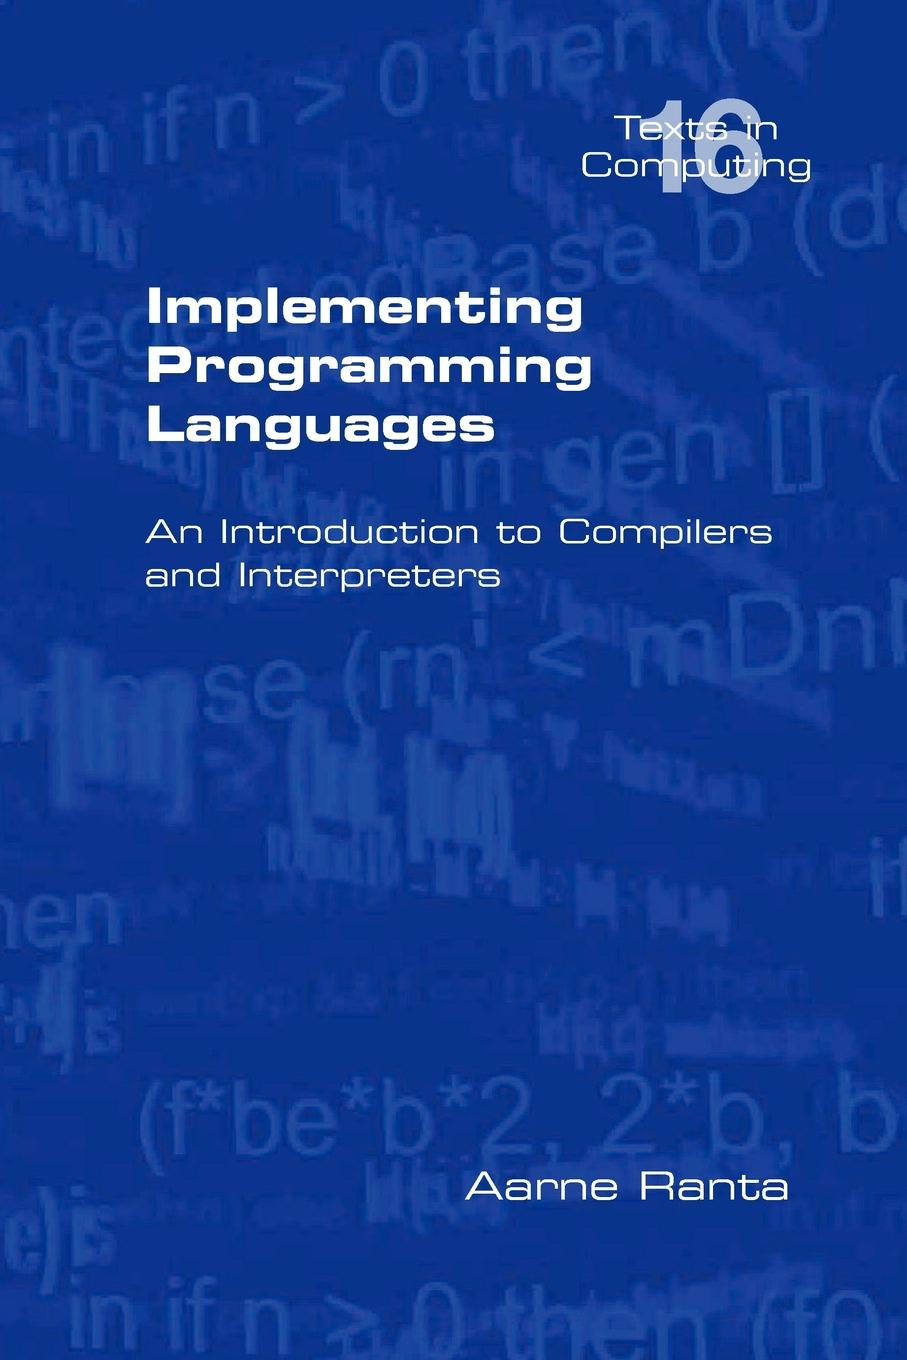 Aarne Ranta Implementing Programming Languages. an Introduction to Compilers and Interpreters